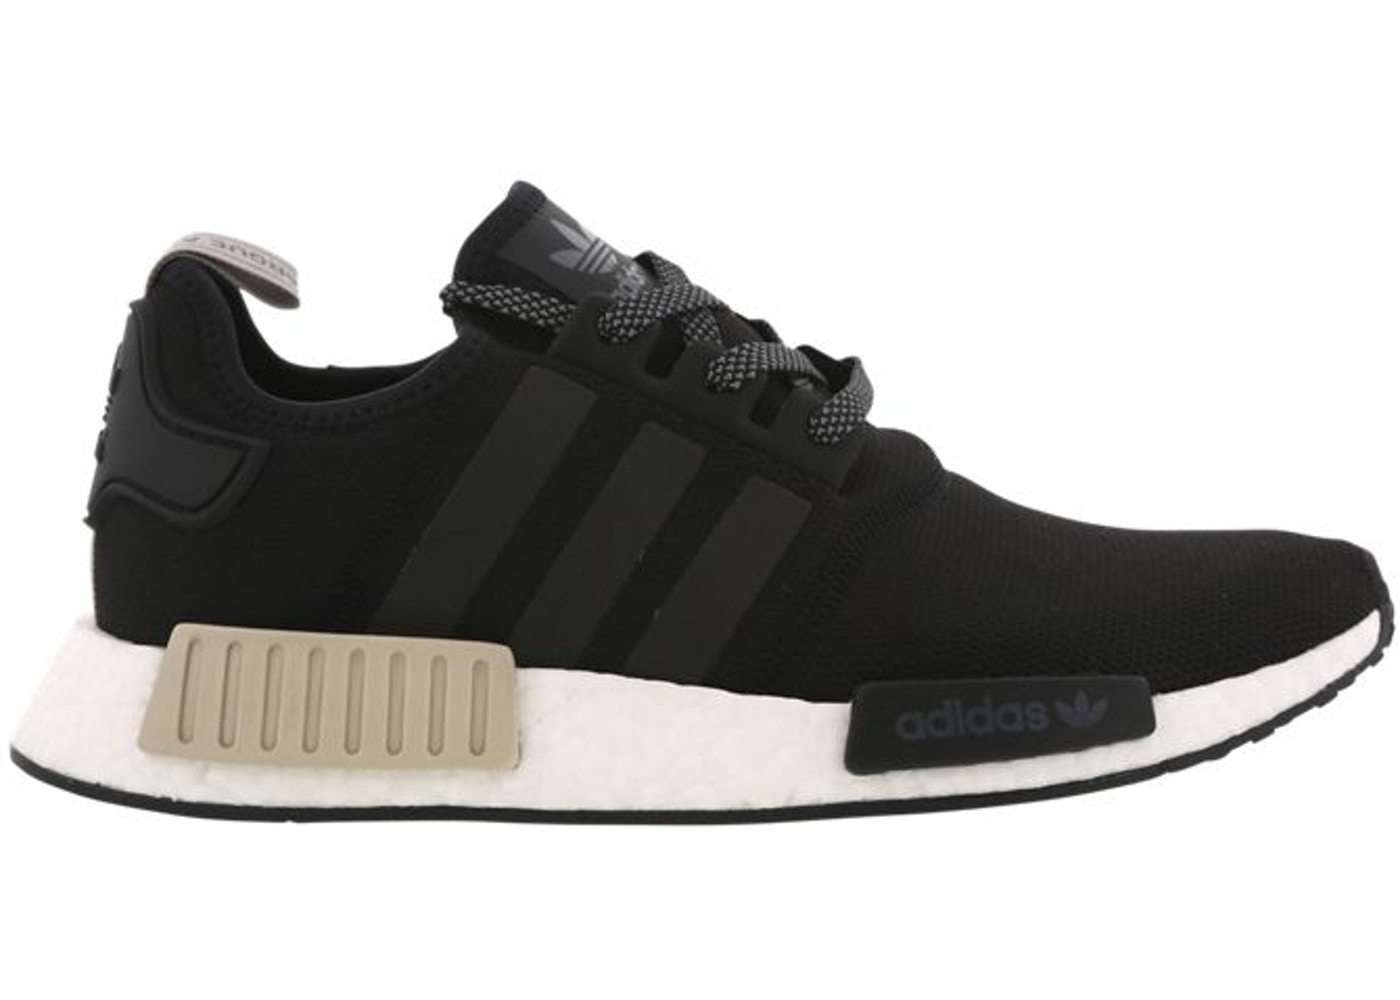 22f2a6bfd Buy adidas NMD Size 17 Shoes   Deadstock Sneakers